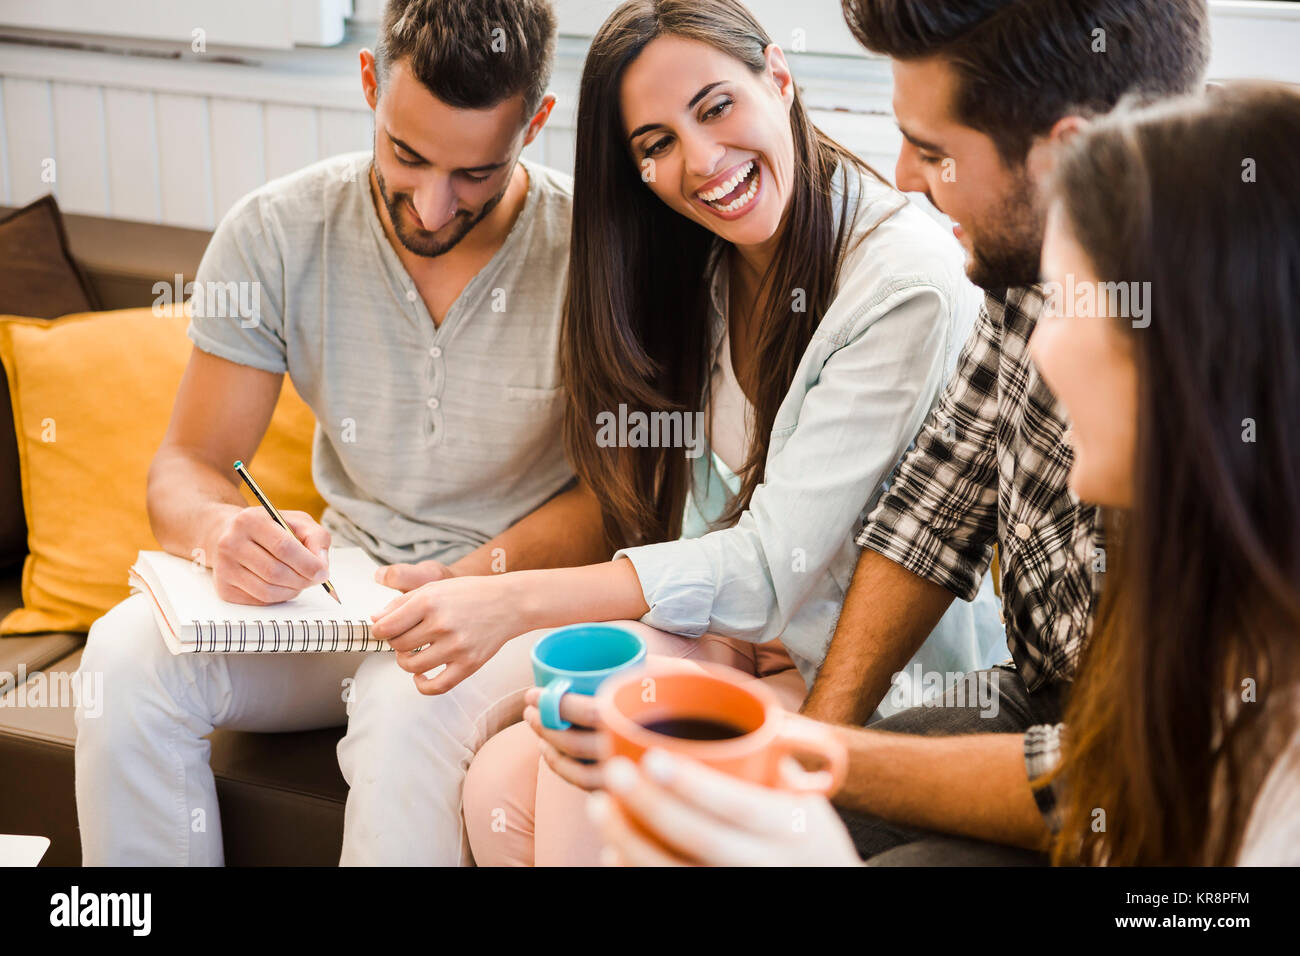 Meeting with friends - Stock Image